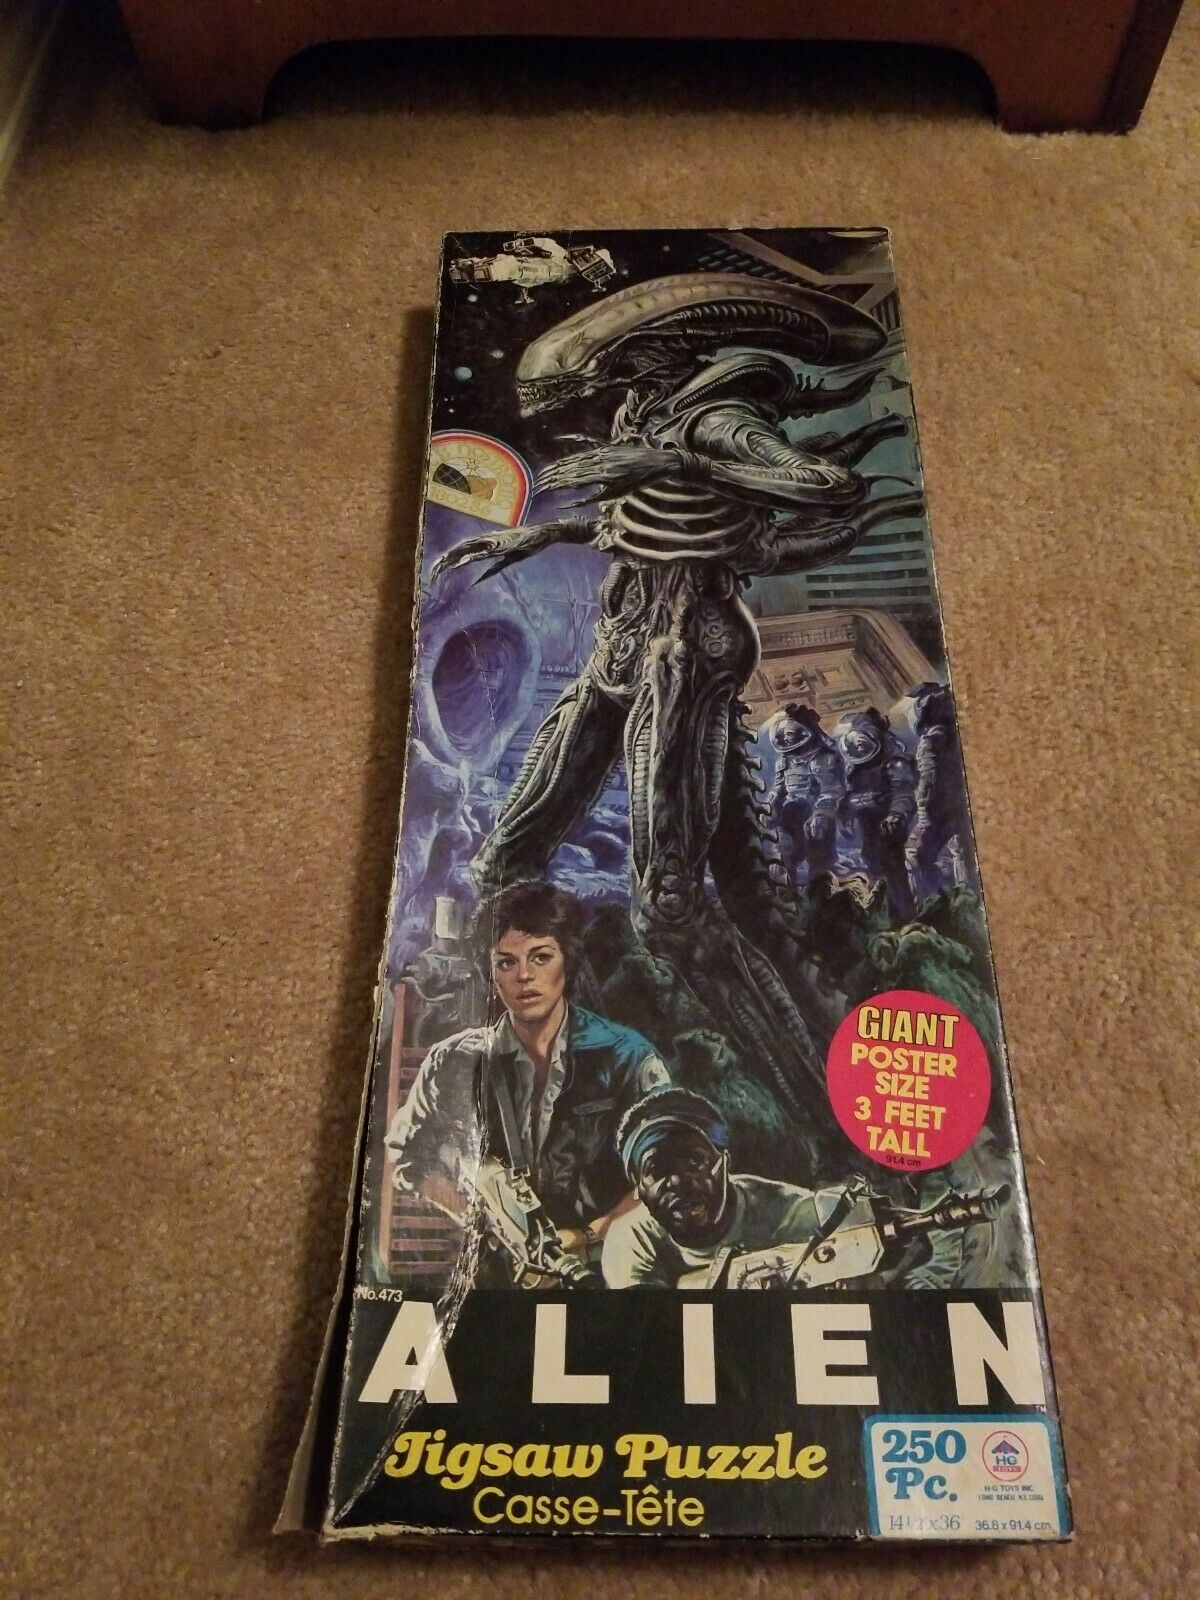 ALIEN GIANT Poster Dimensione 36  JIGSAW PUZZLE  HG TOYS 1979